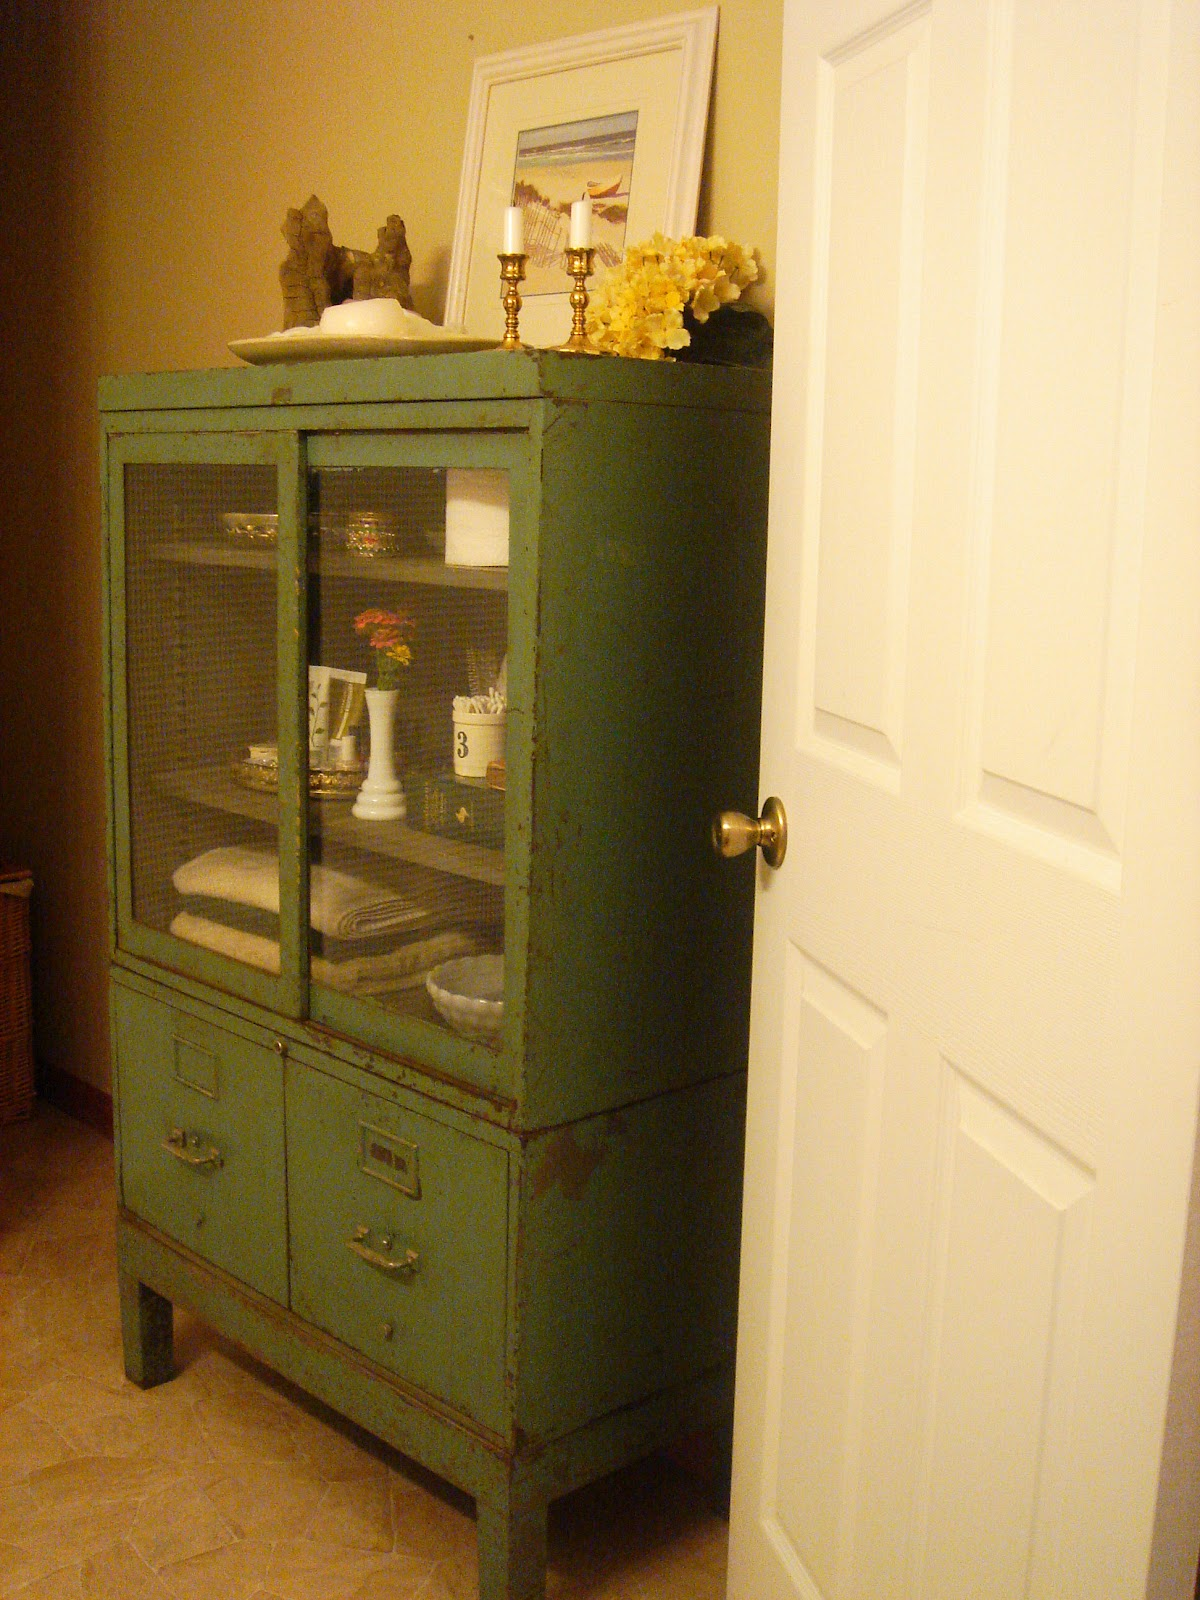 Our Neck Of The Woods: Vintage Bathroom Cabinet